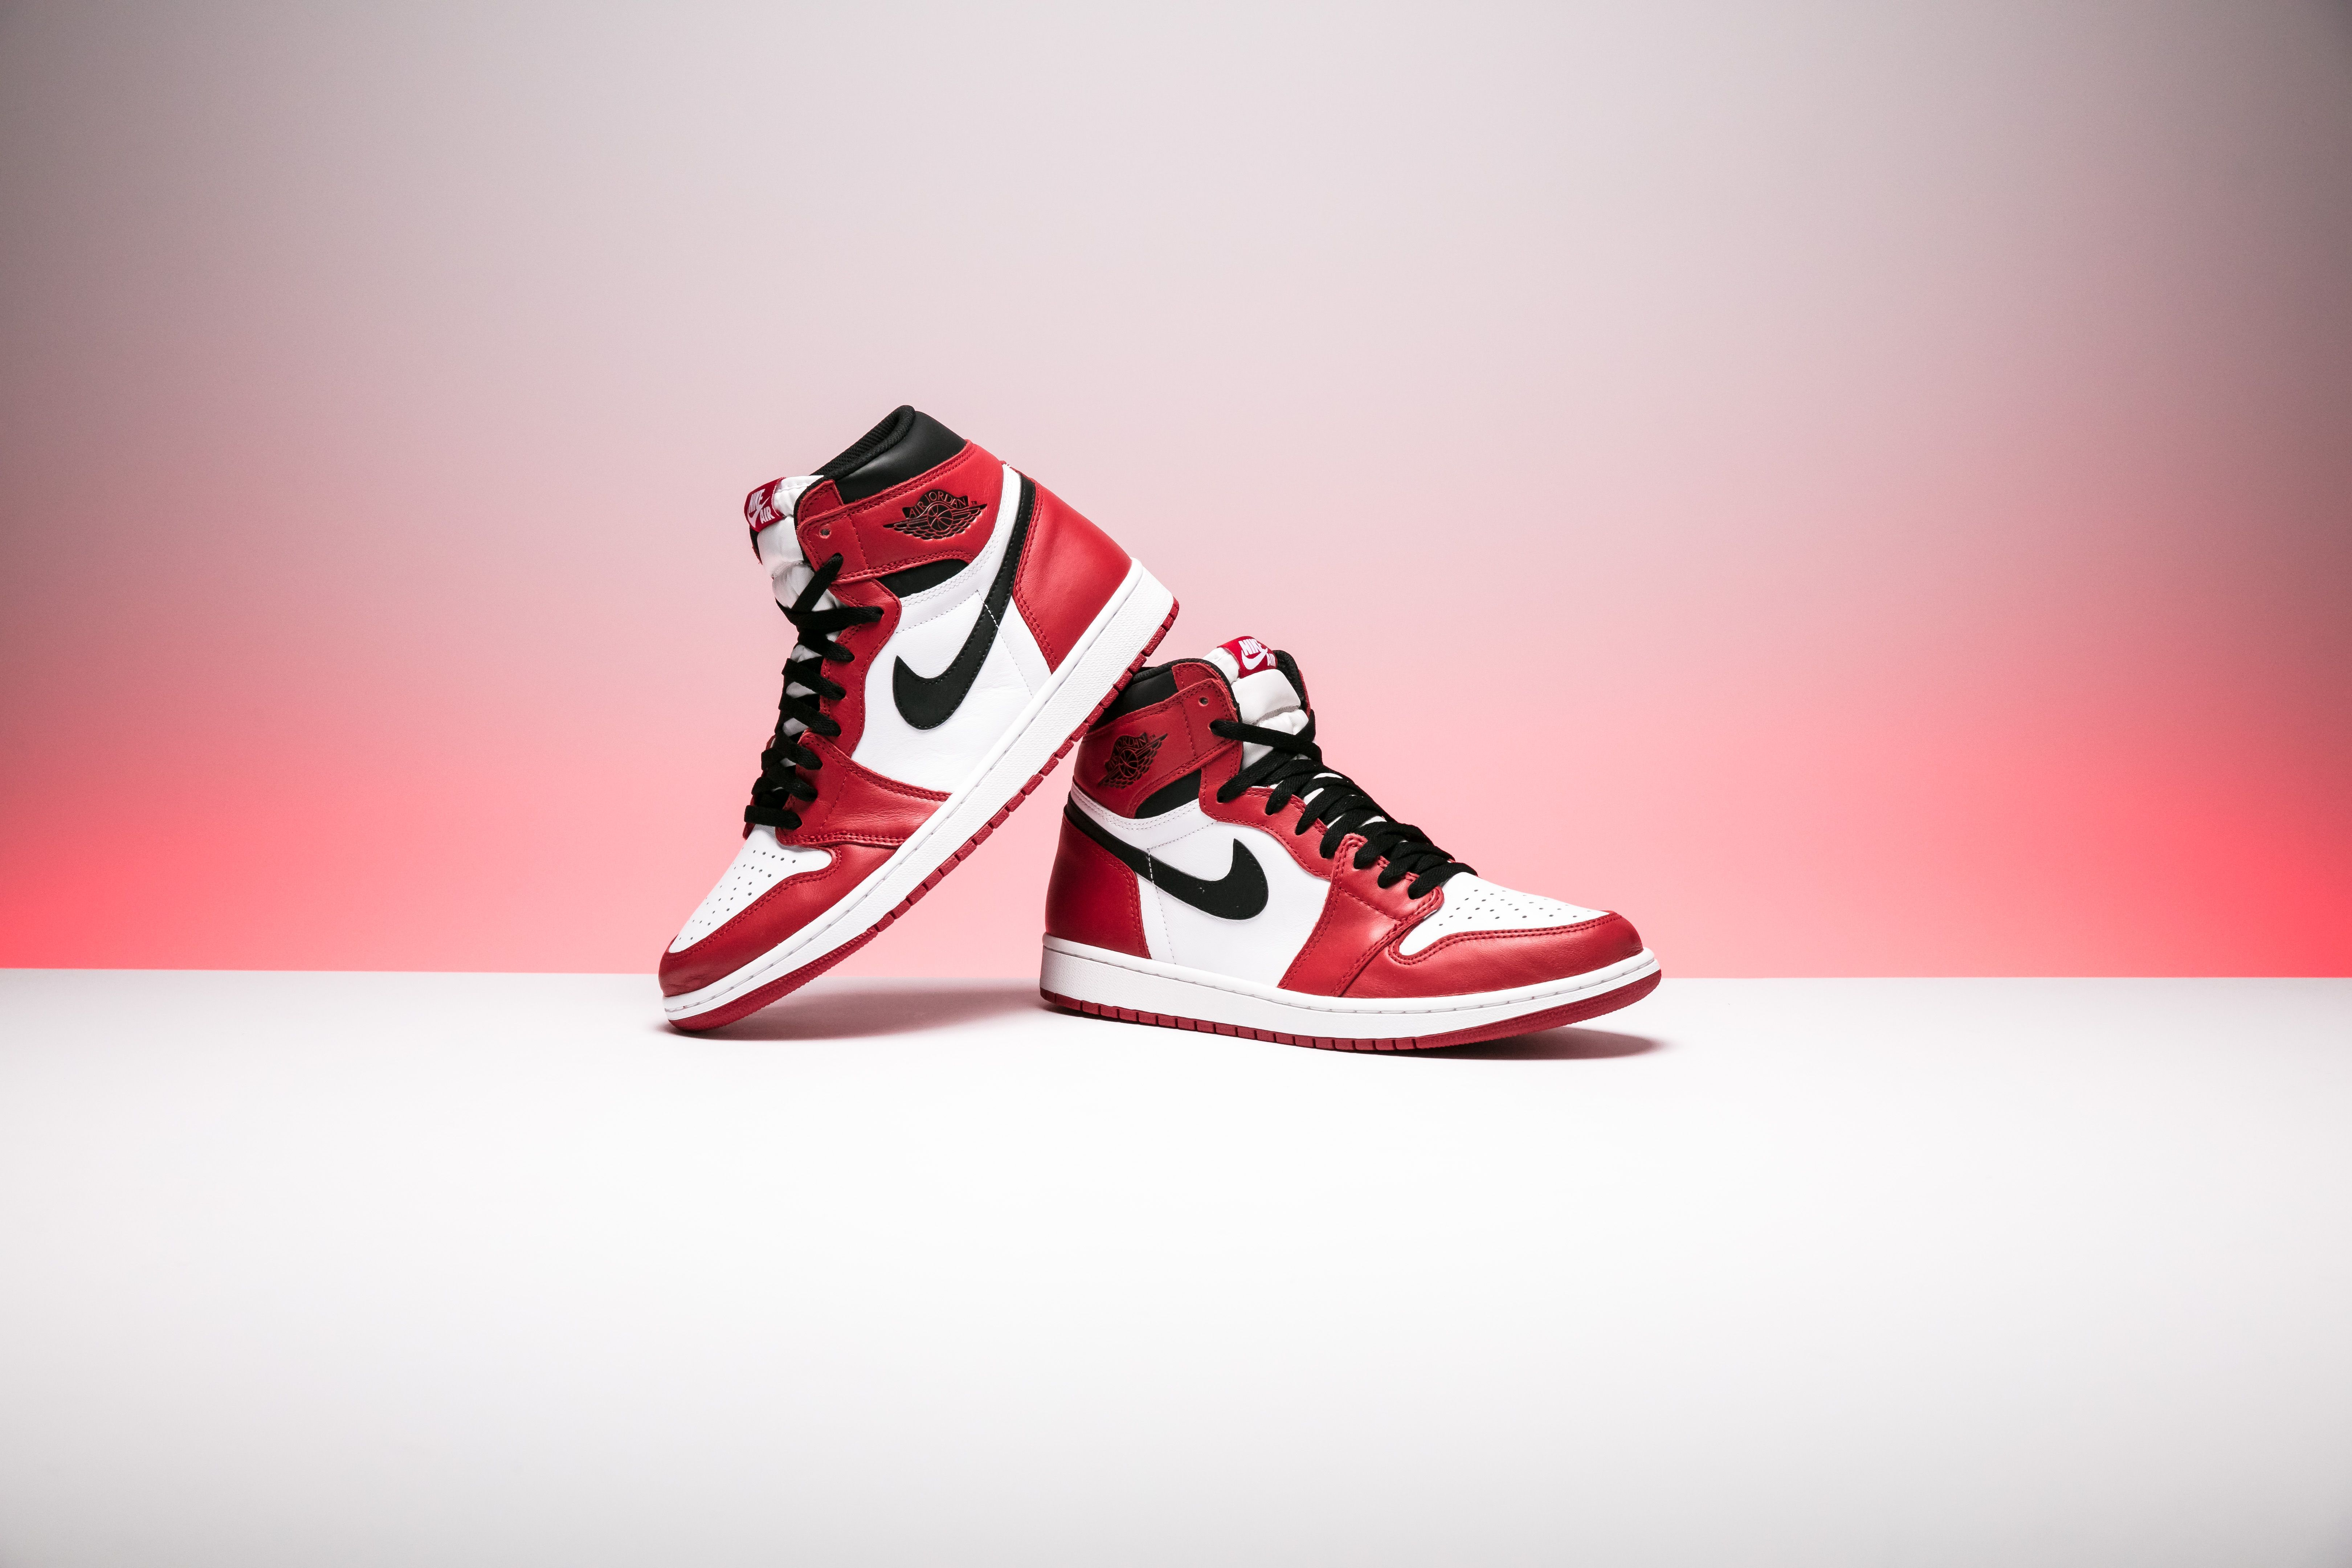 Air Jordan 1 Retro High Og Chicago 555088 101 With Images